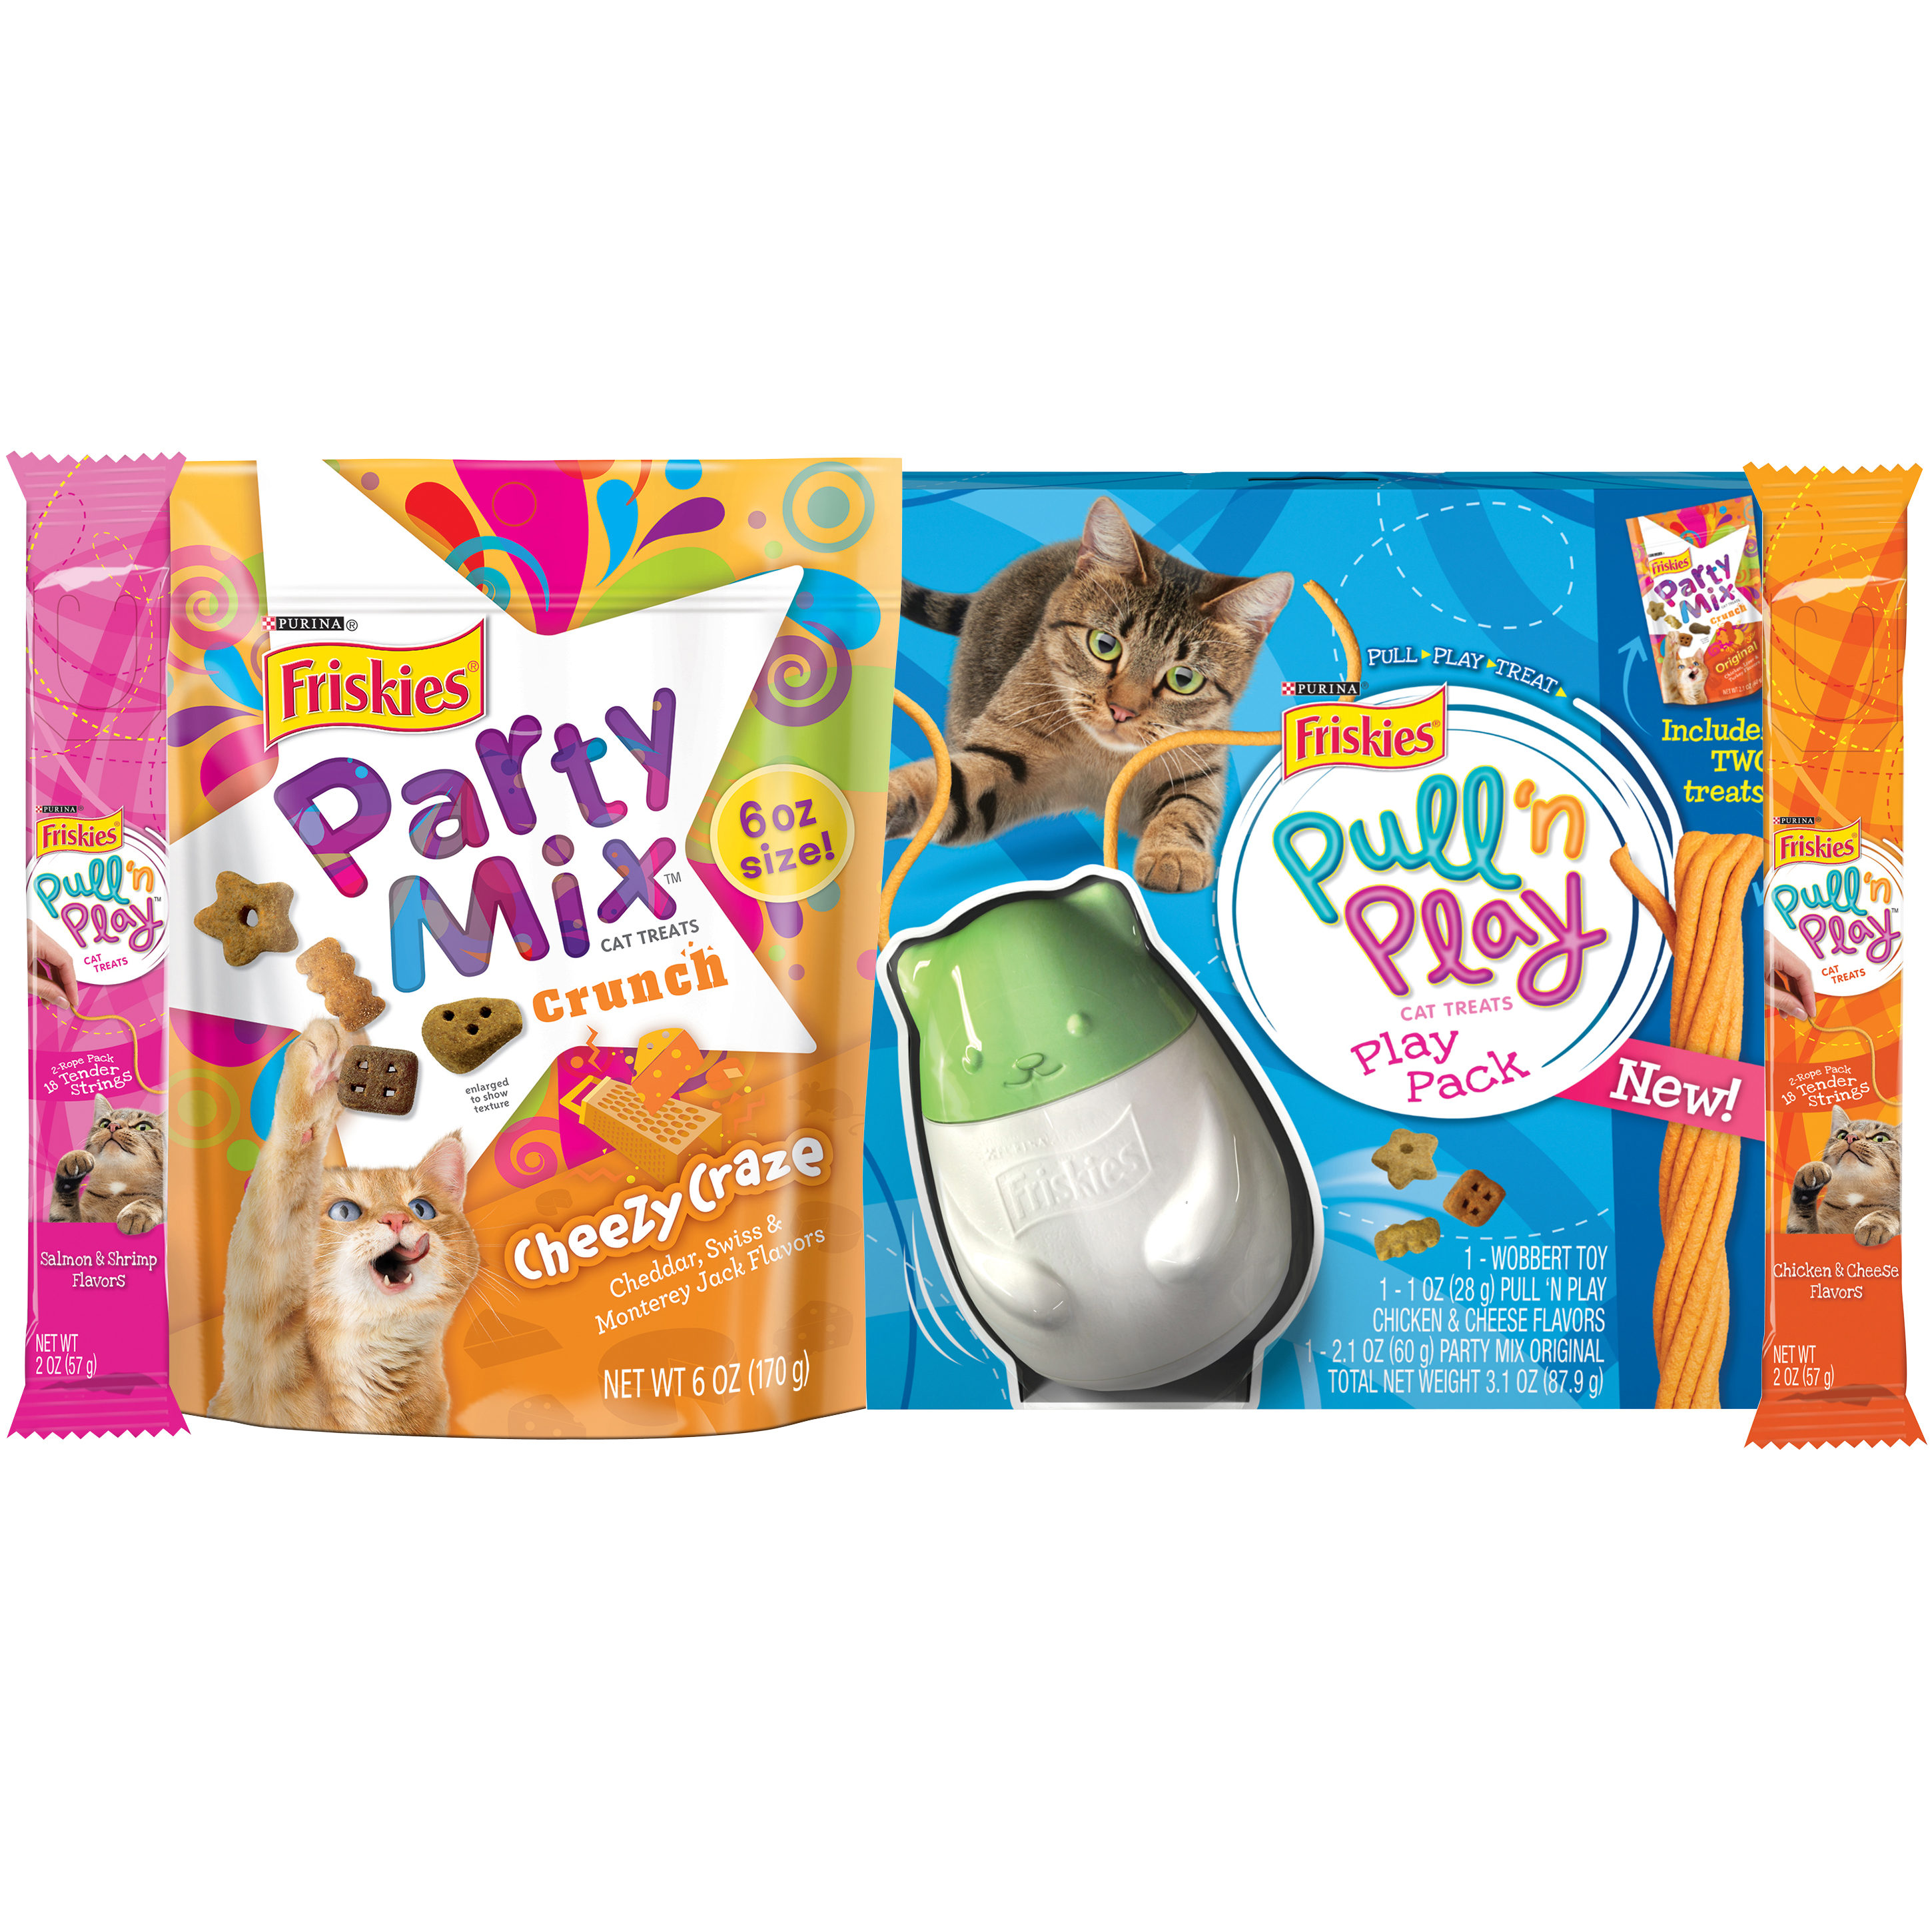 Purina Friskies Pull N' Play Cat Treats Pet Holiday Bundle, Pack of 4